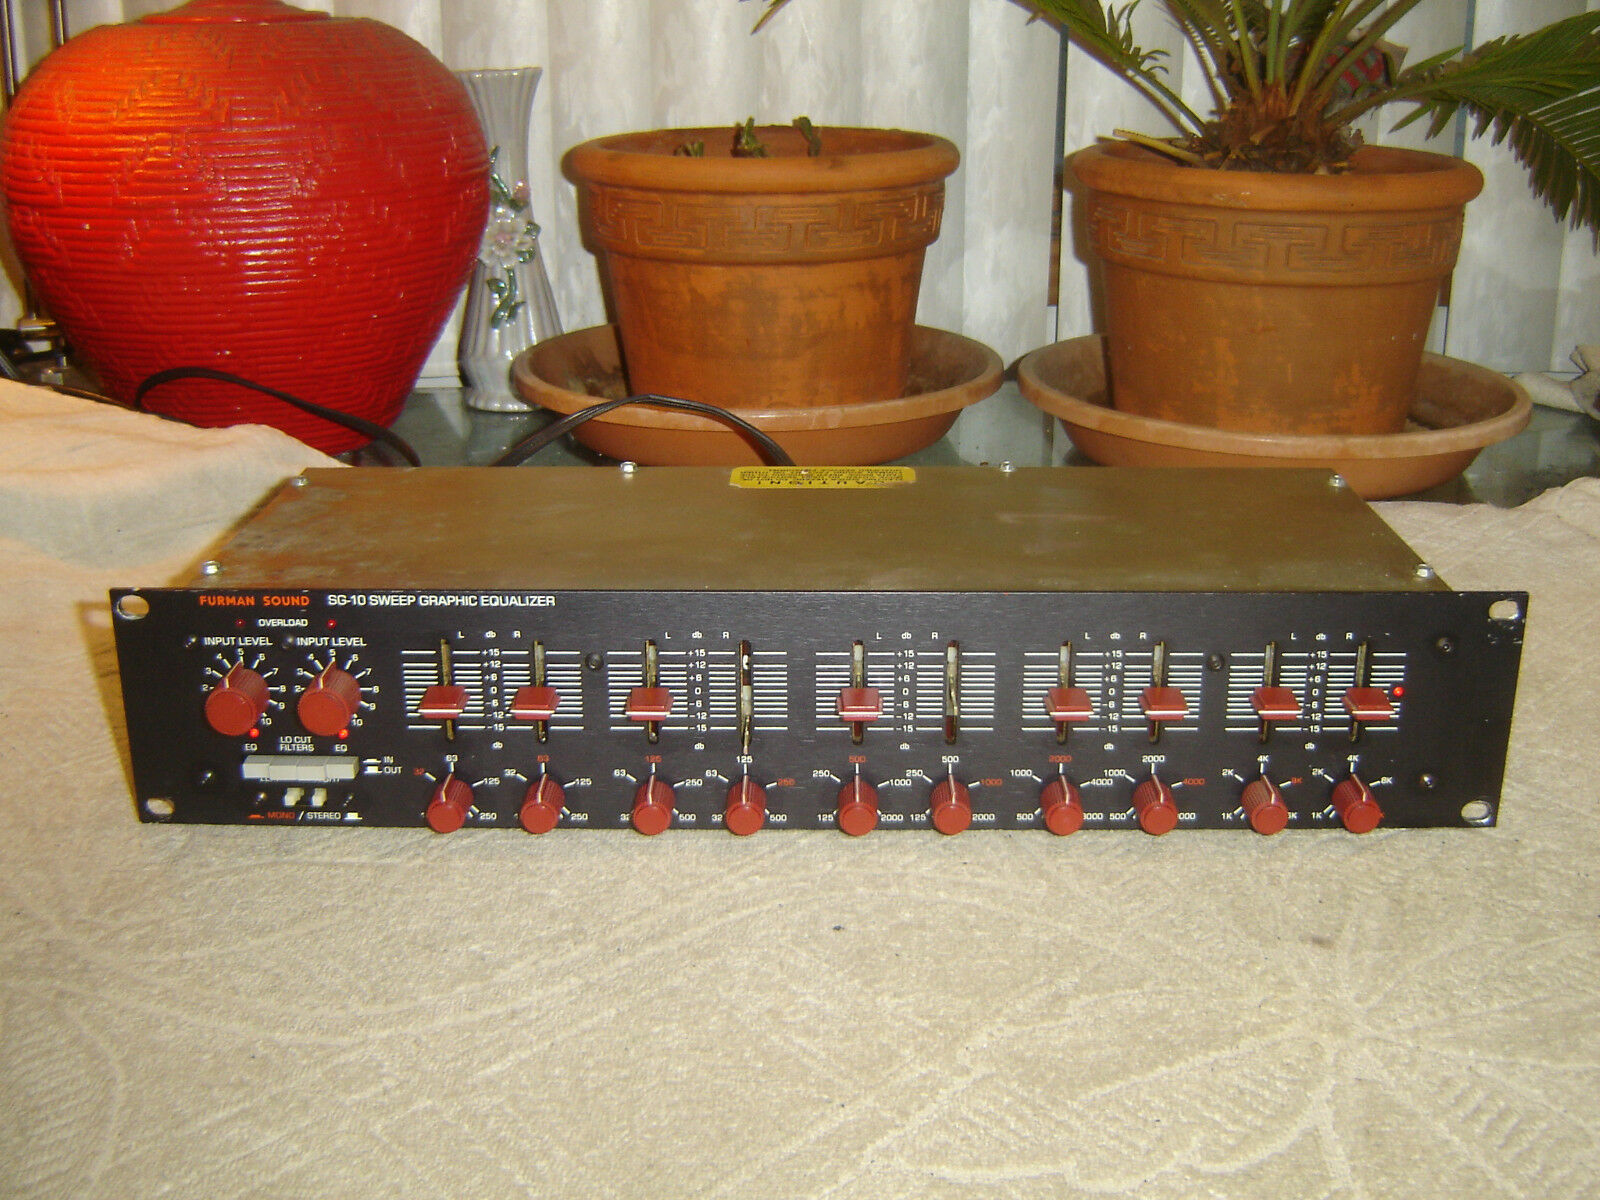 Furman SG-10, Stereo Parametric Sweep Graphic Equalizer, Eq, Vintage Rack, As Is